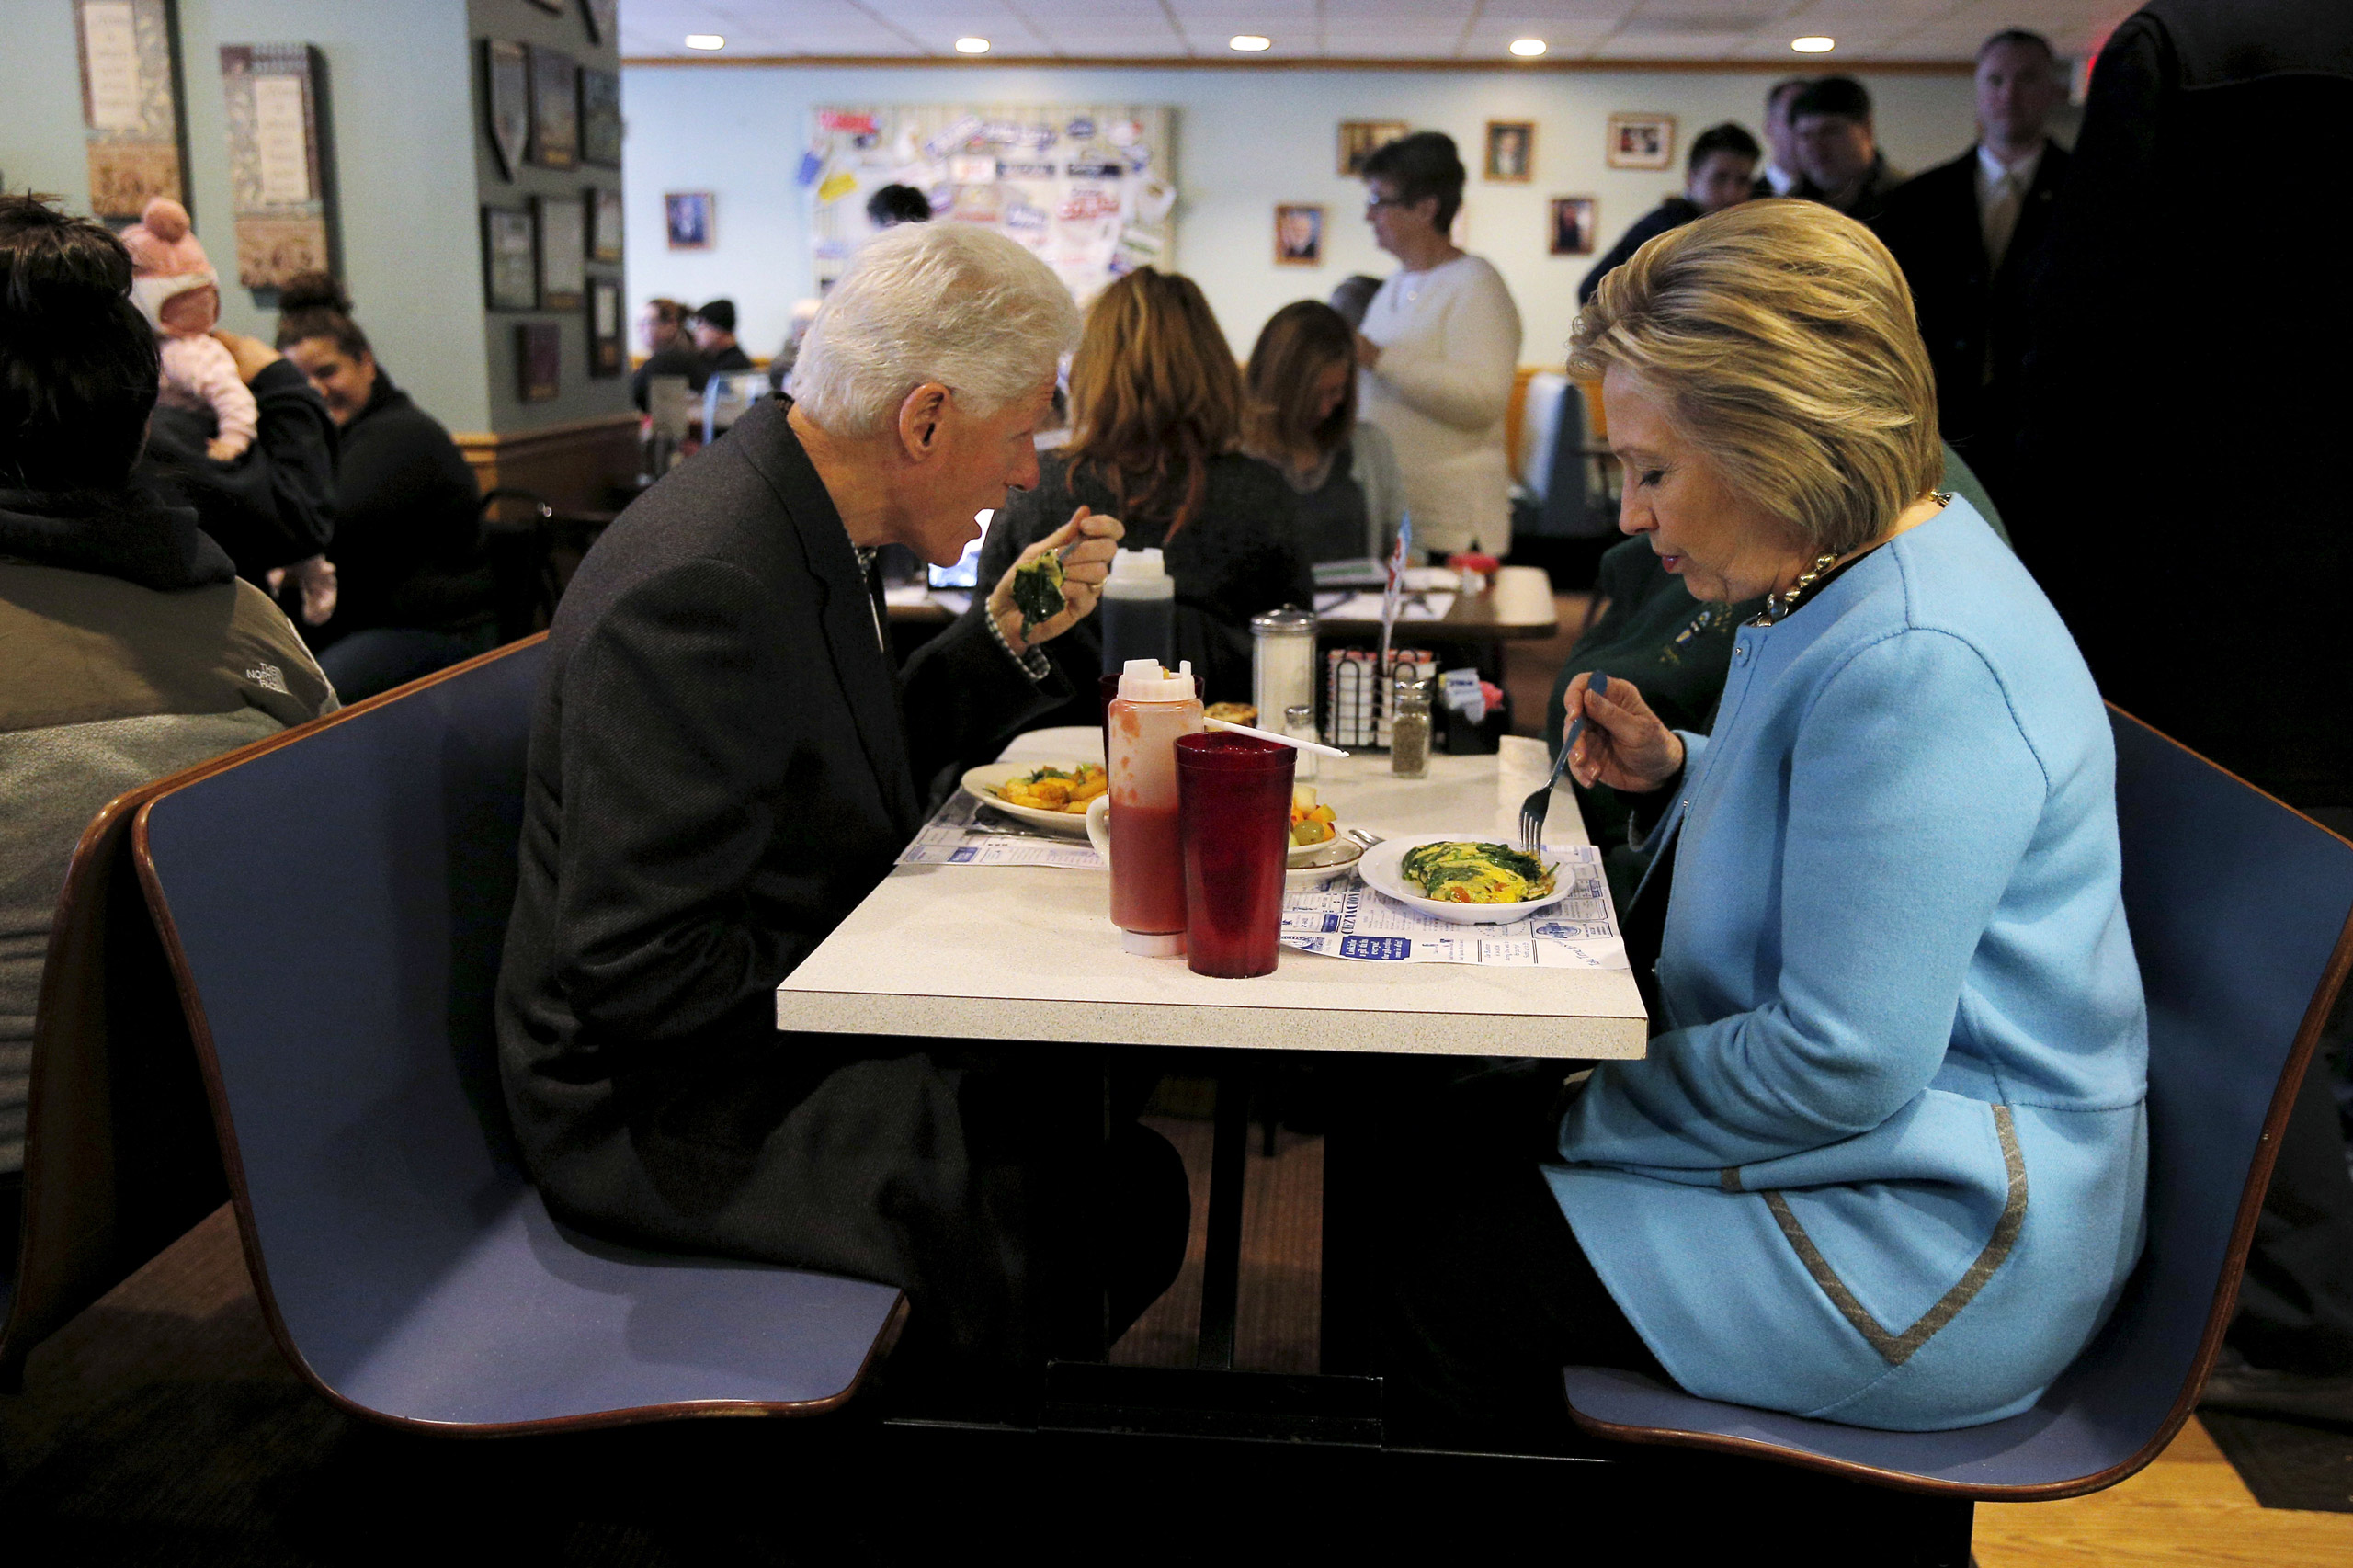 Democratic presidential candidate Hillary Clinton and her husband, former President Bill Clinton eat breakfast at the Chez Vachon restaurant in Manchester, N.H., on Febr. 8, 2016.